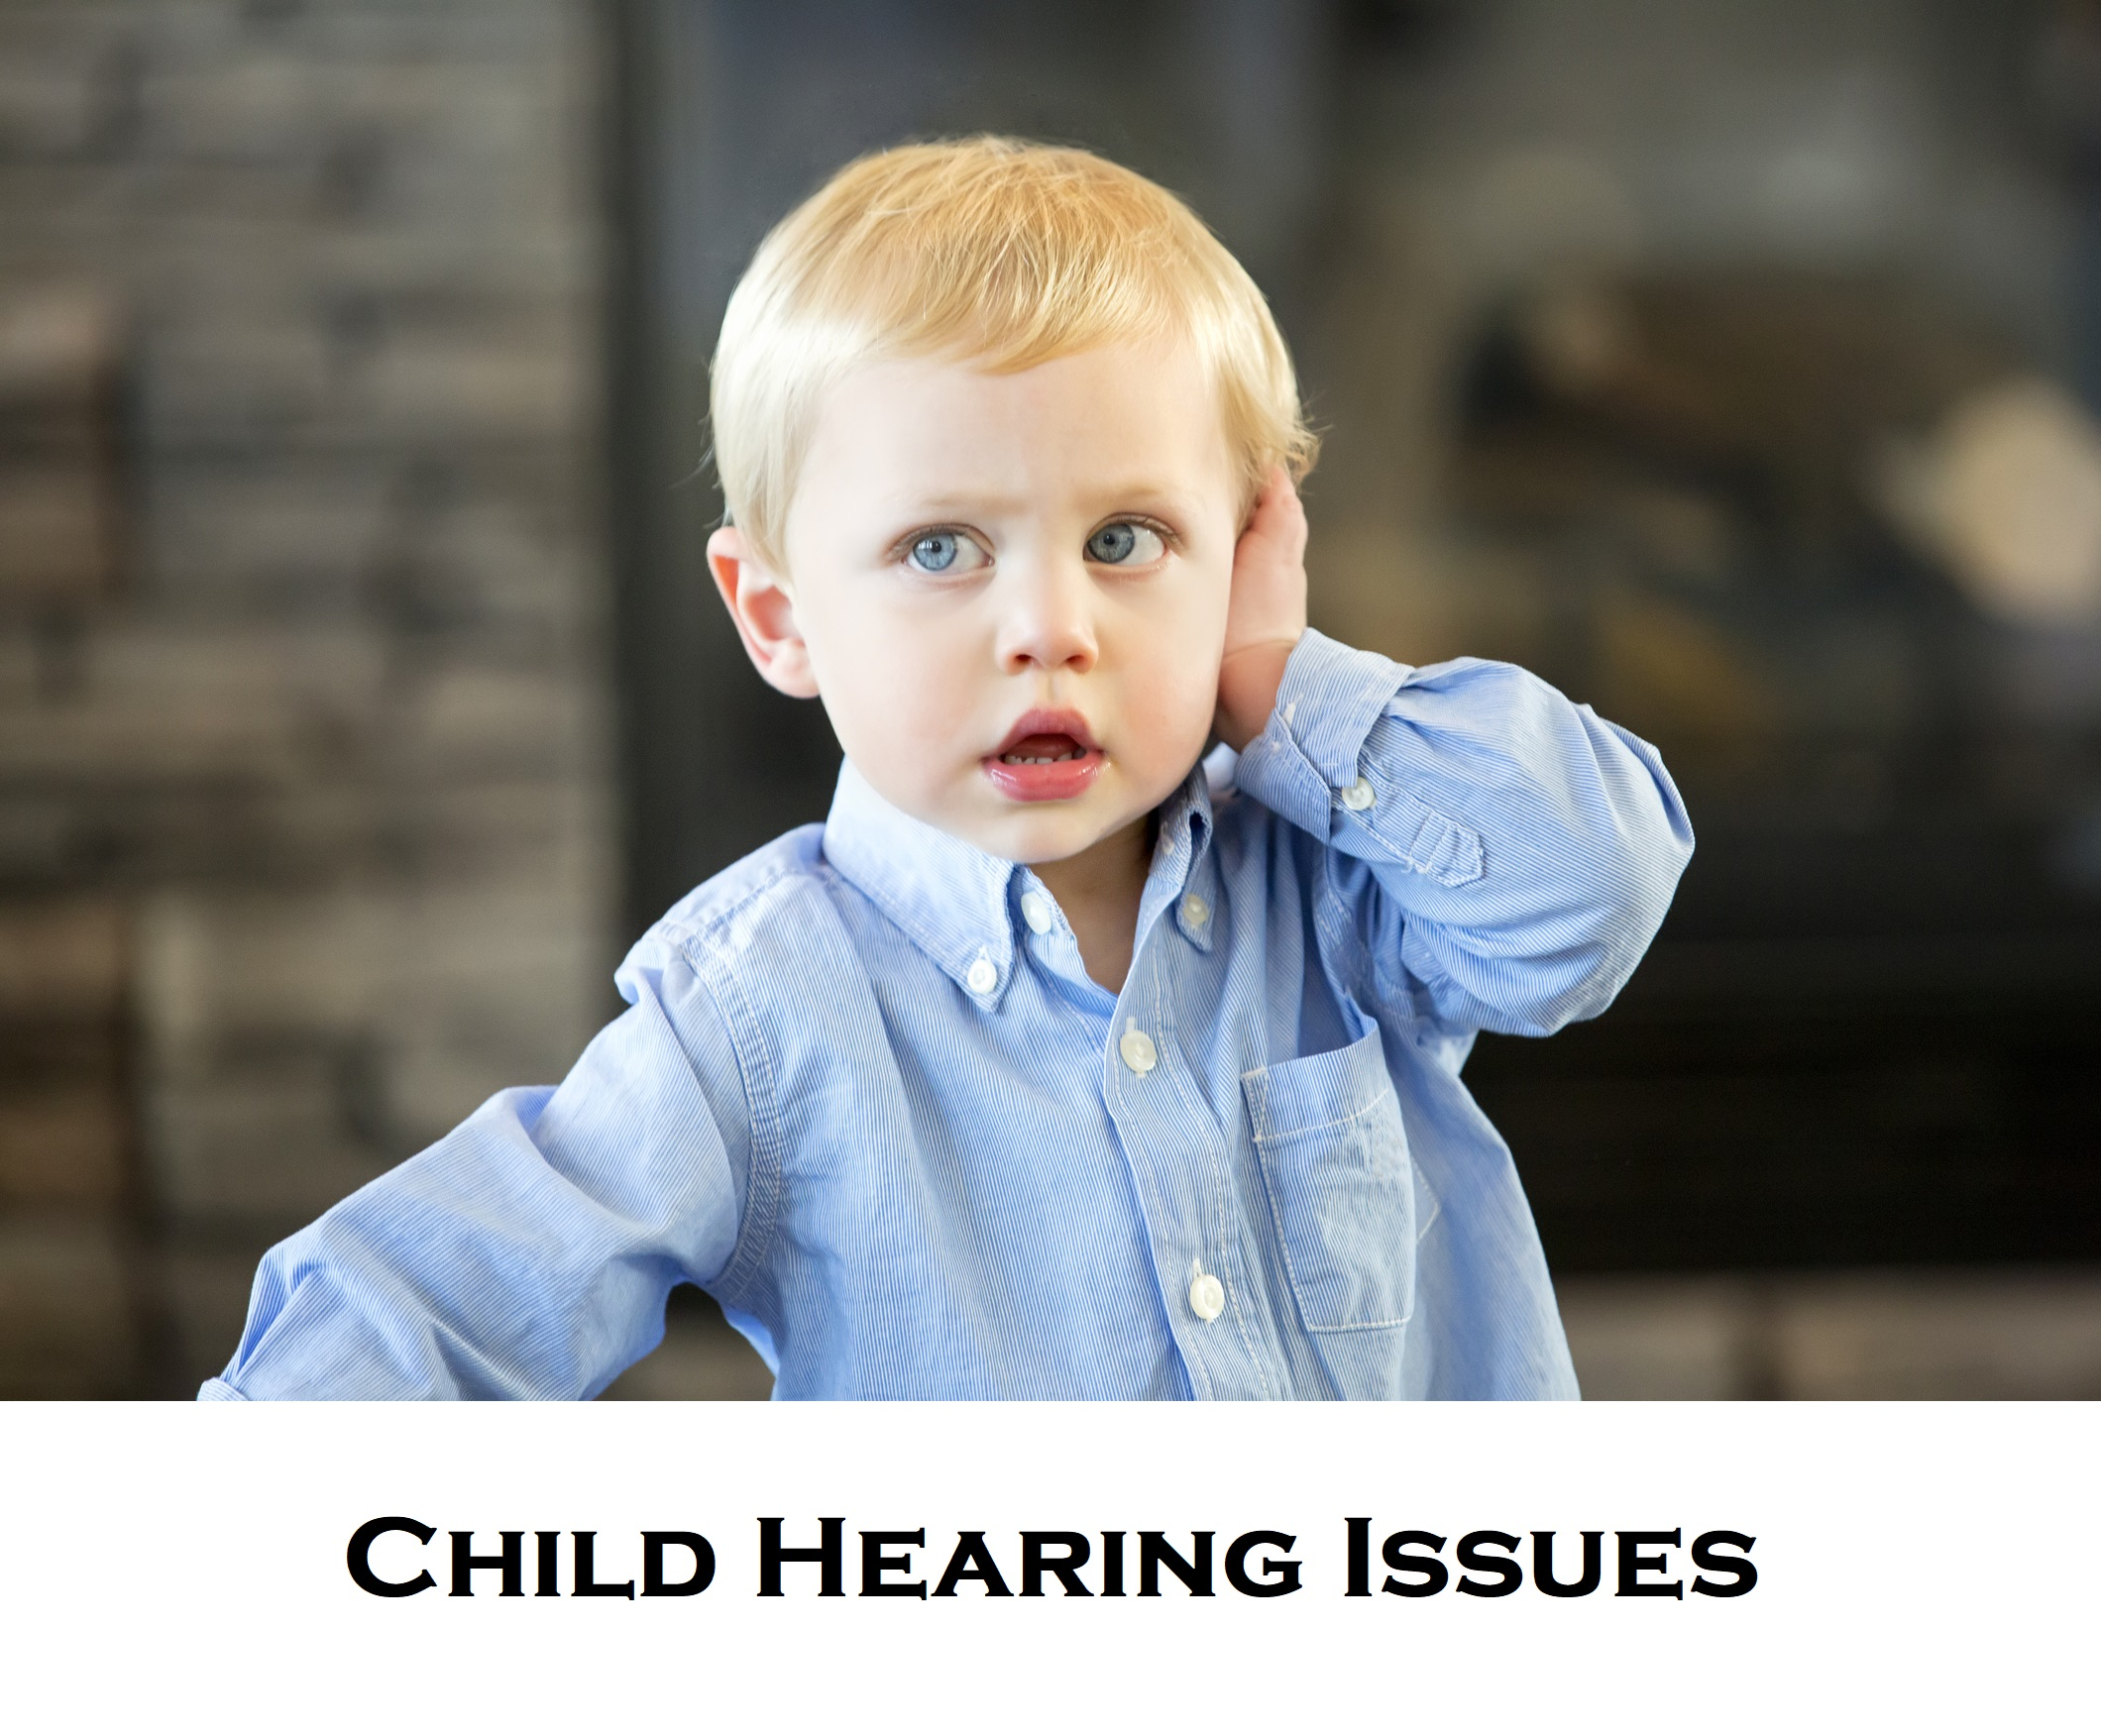 Child Hearing Issues